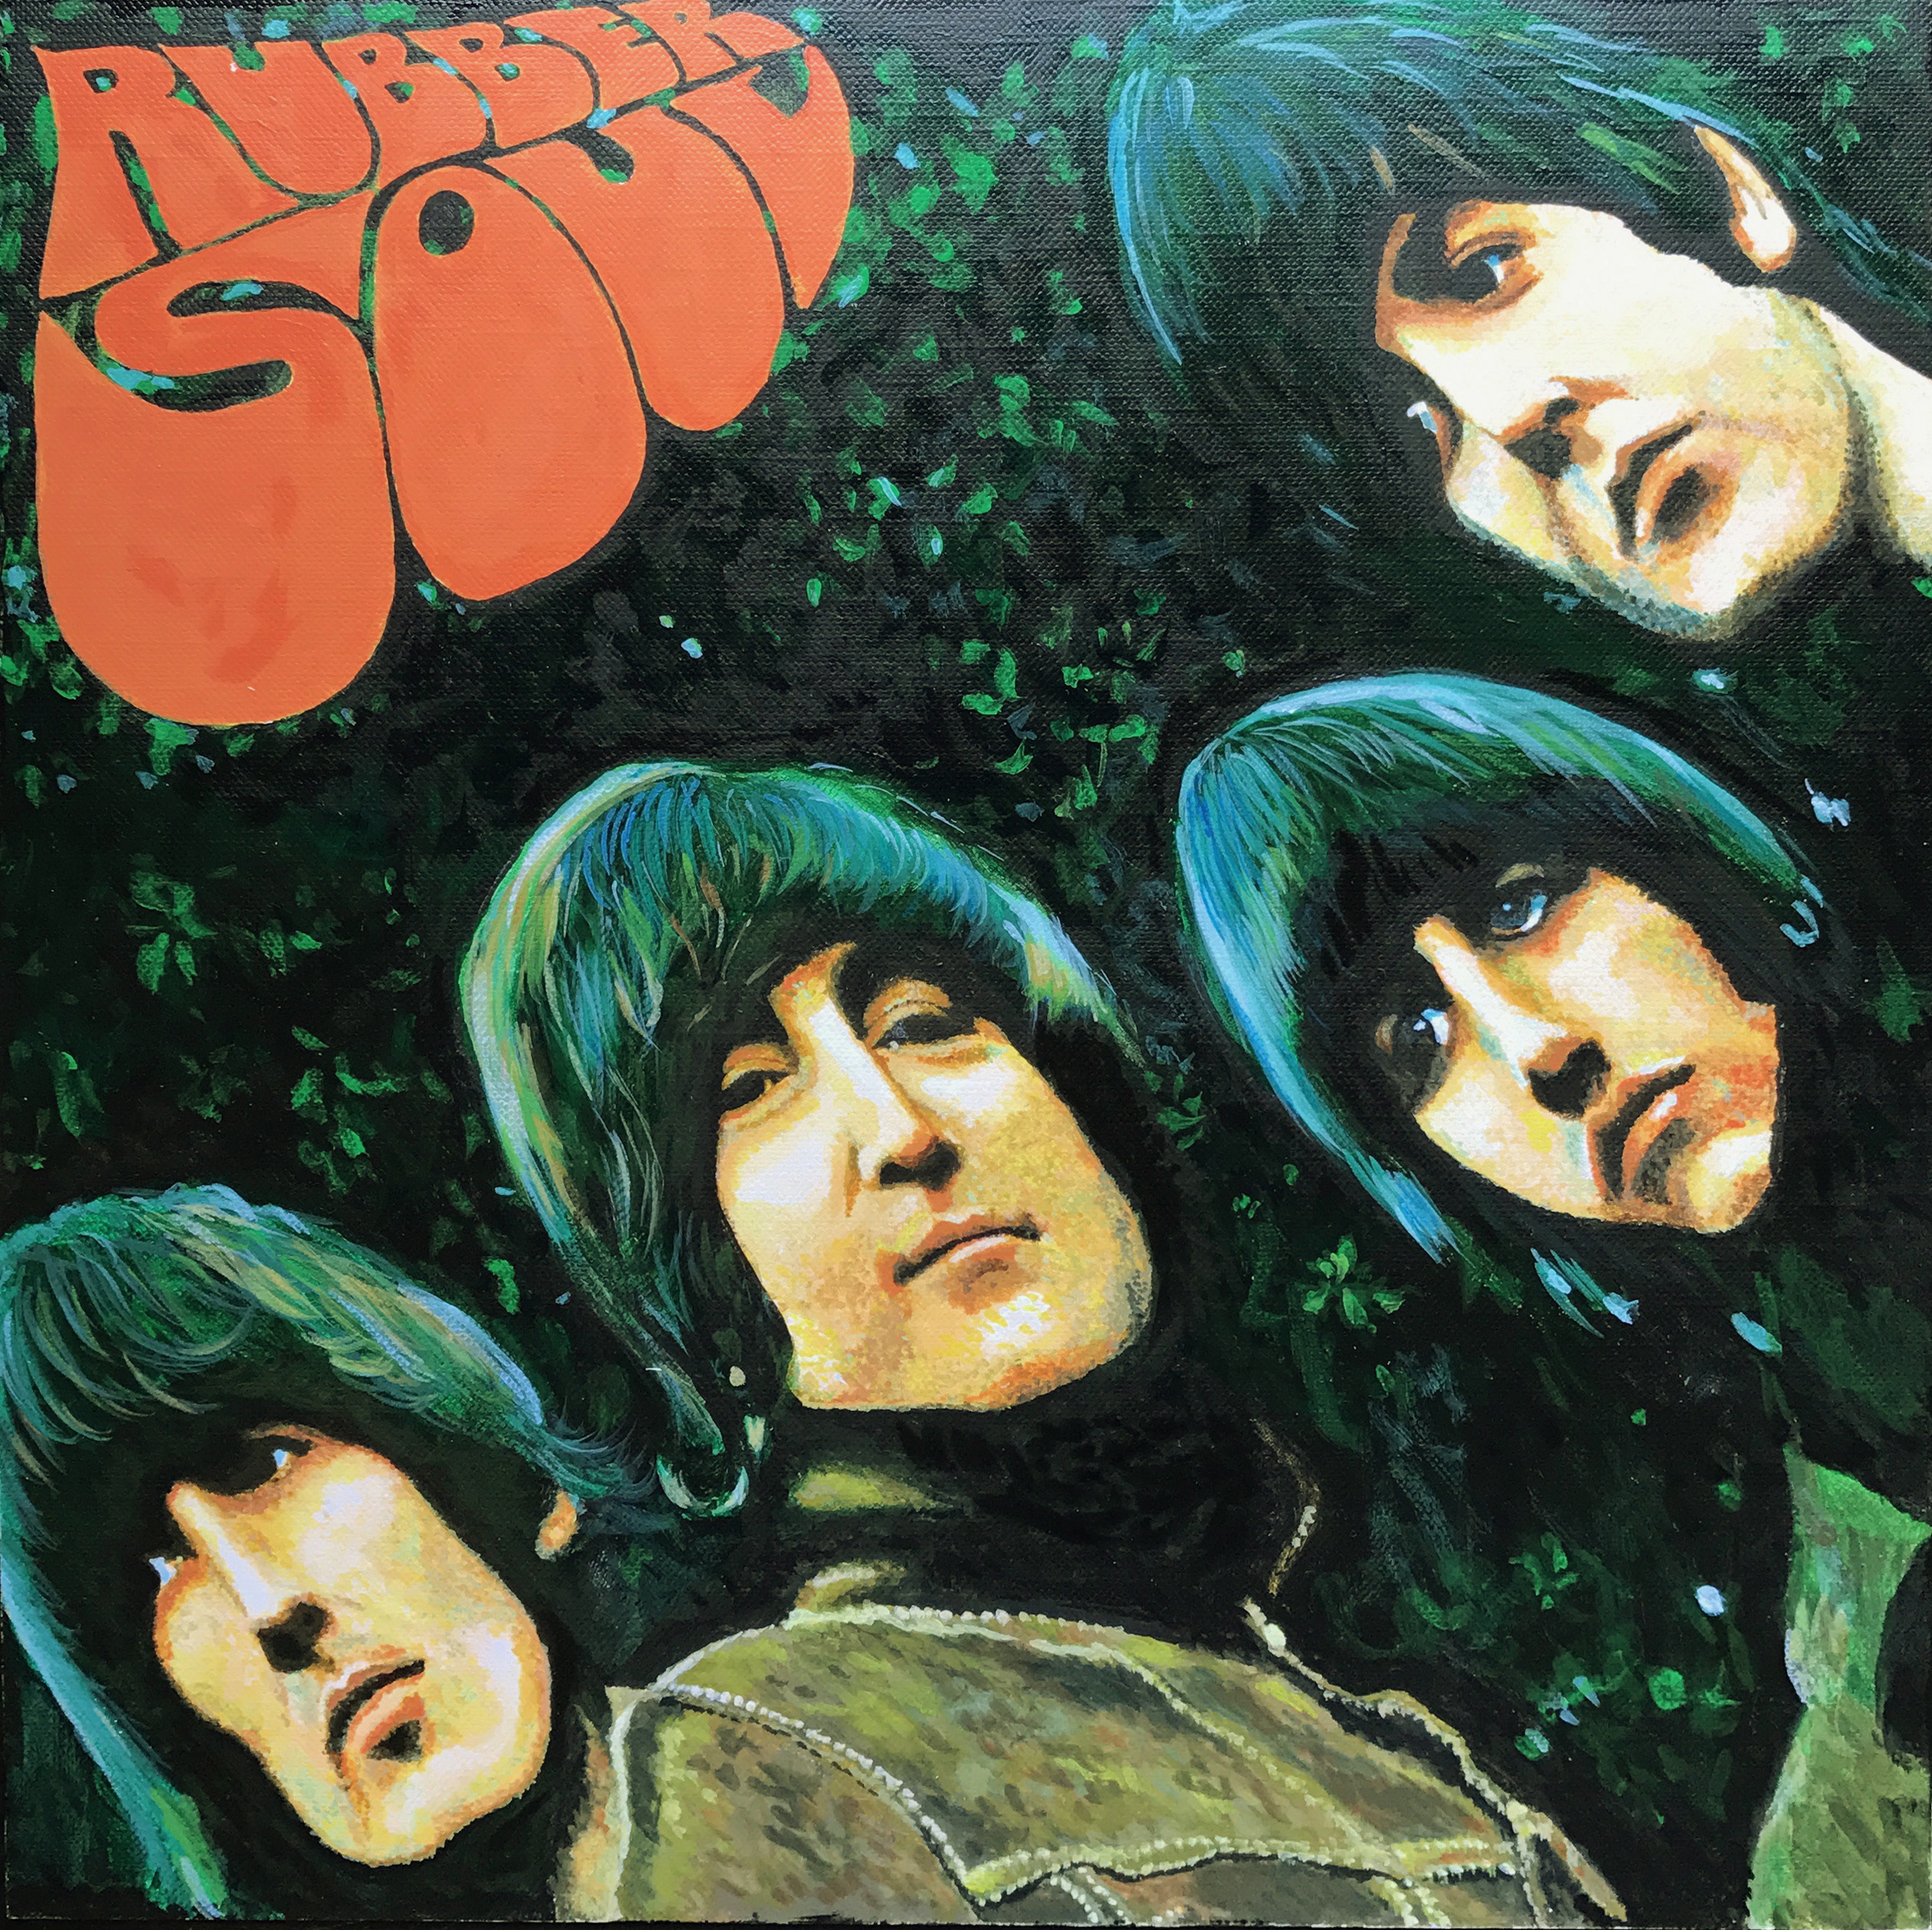 Rubber Soul (Painting)